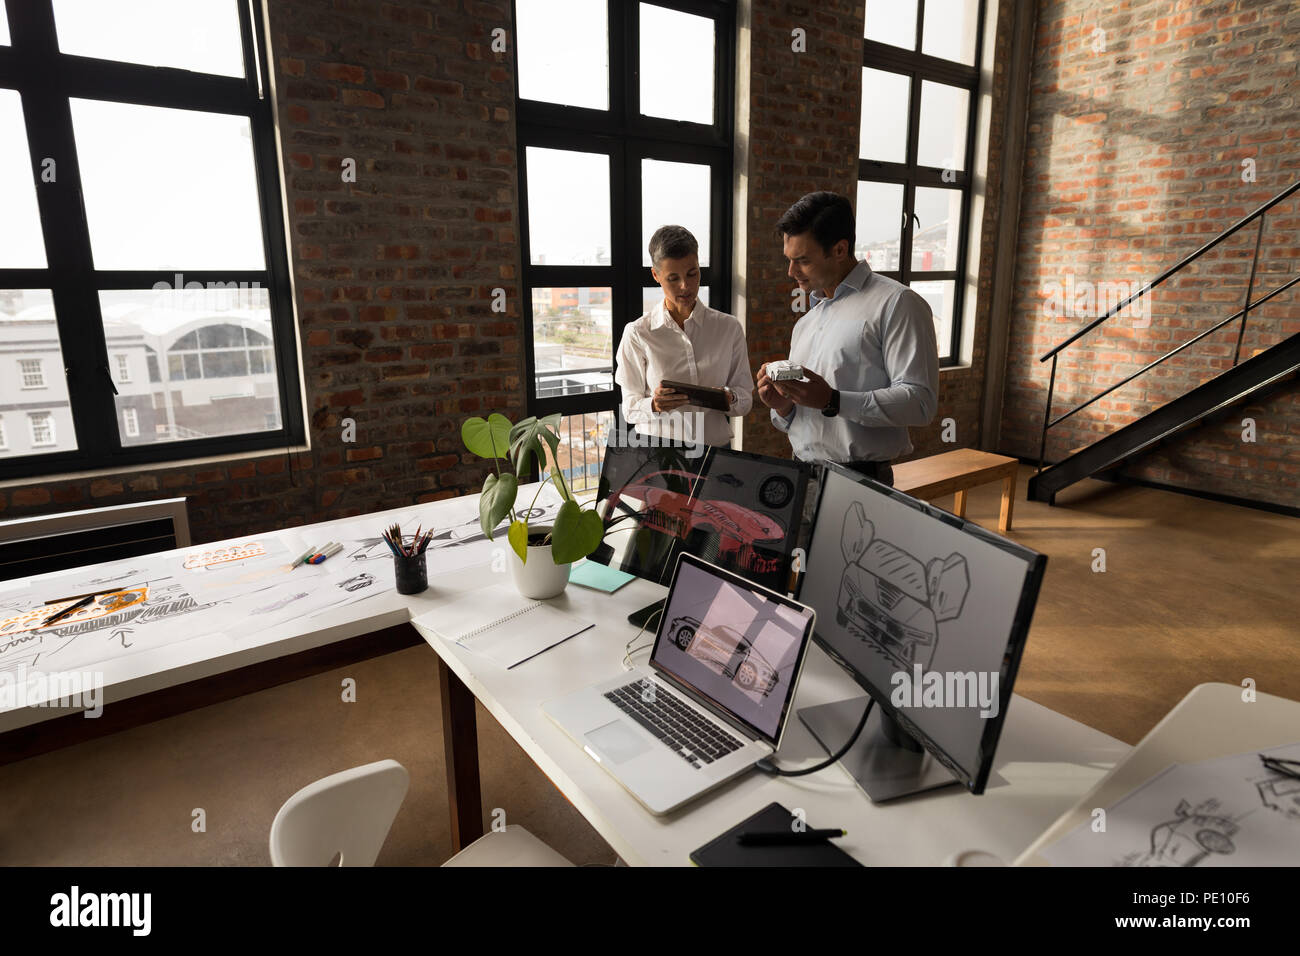 Business colleagues discussing over digital tablet - Stock Image